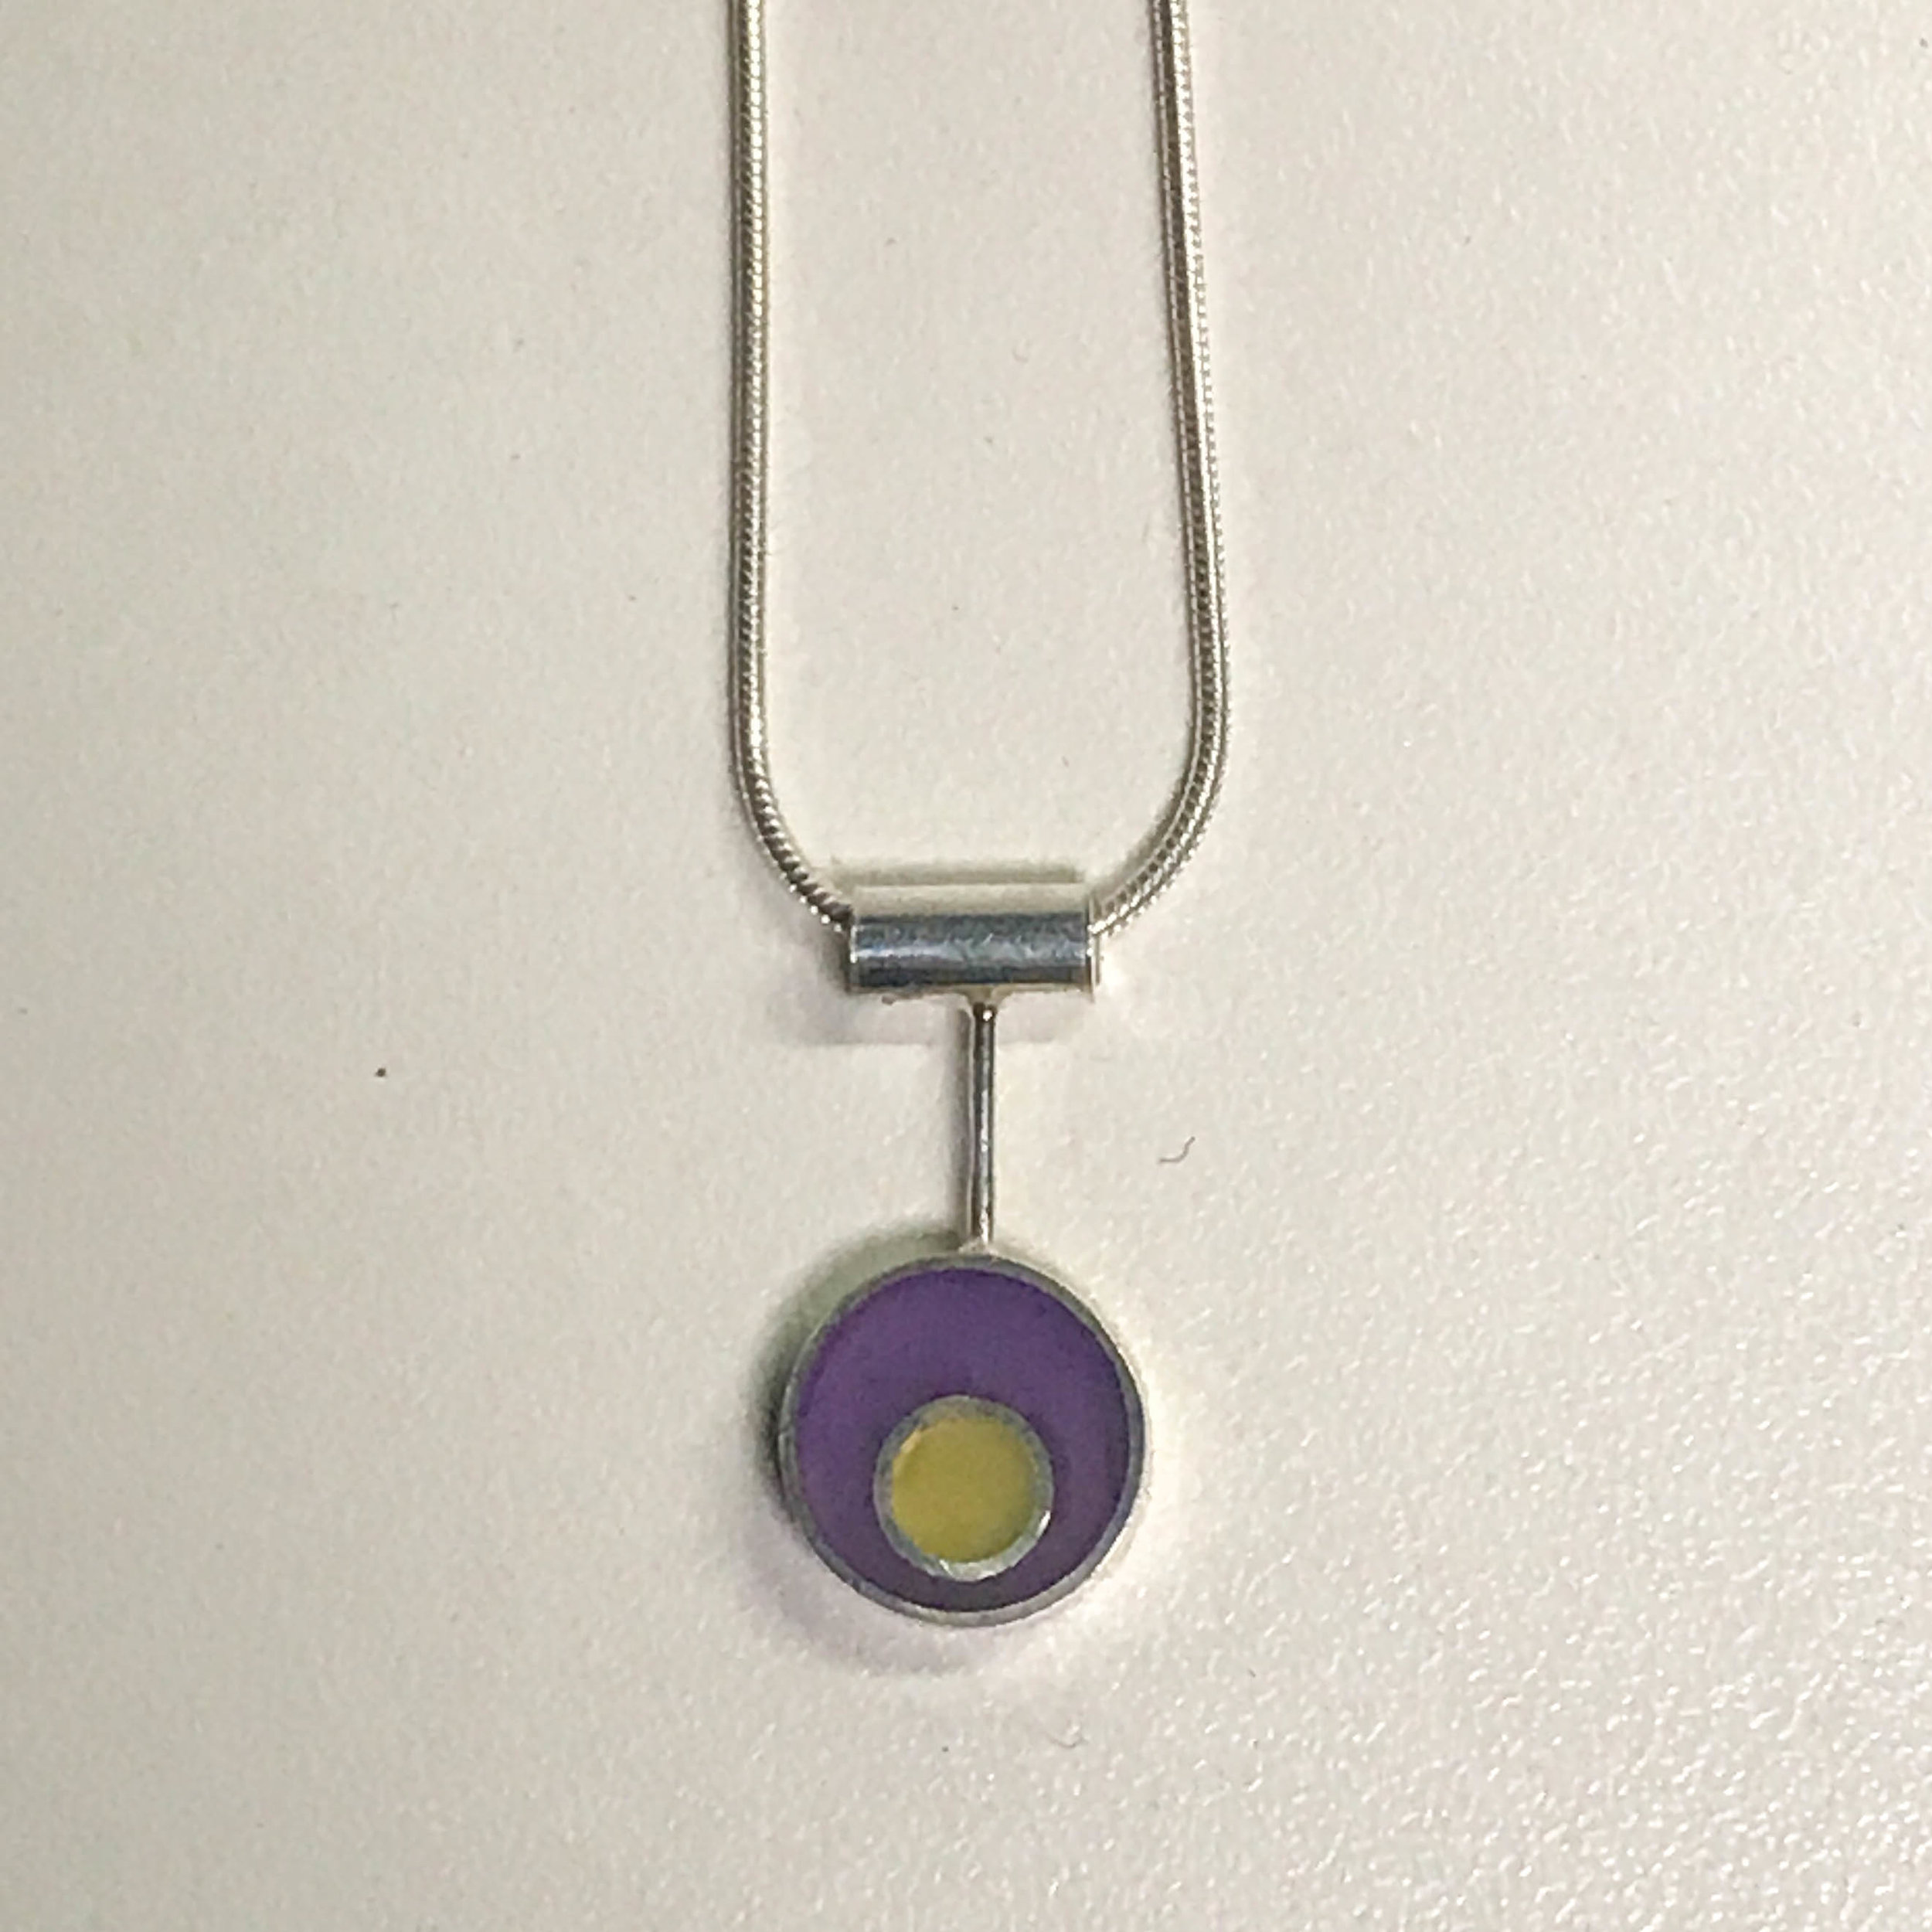 Round pendant drop necklace, sterling silver with resin inlay, sterling silver snake chain, $80